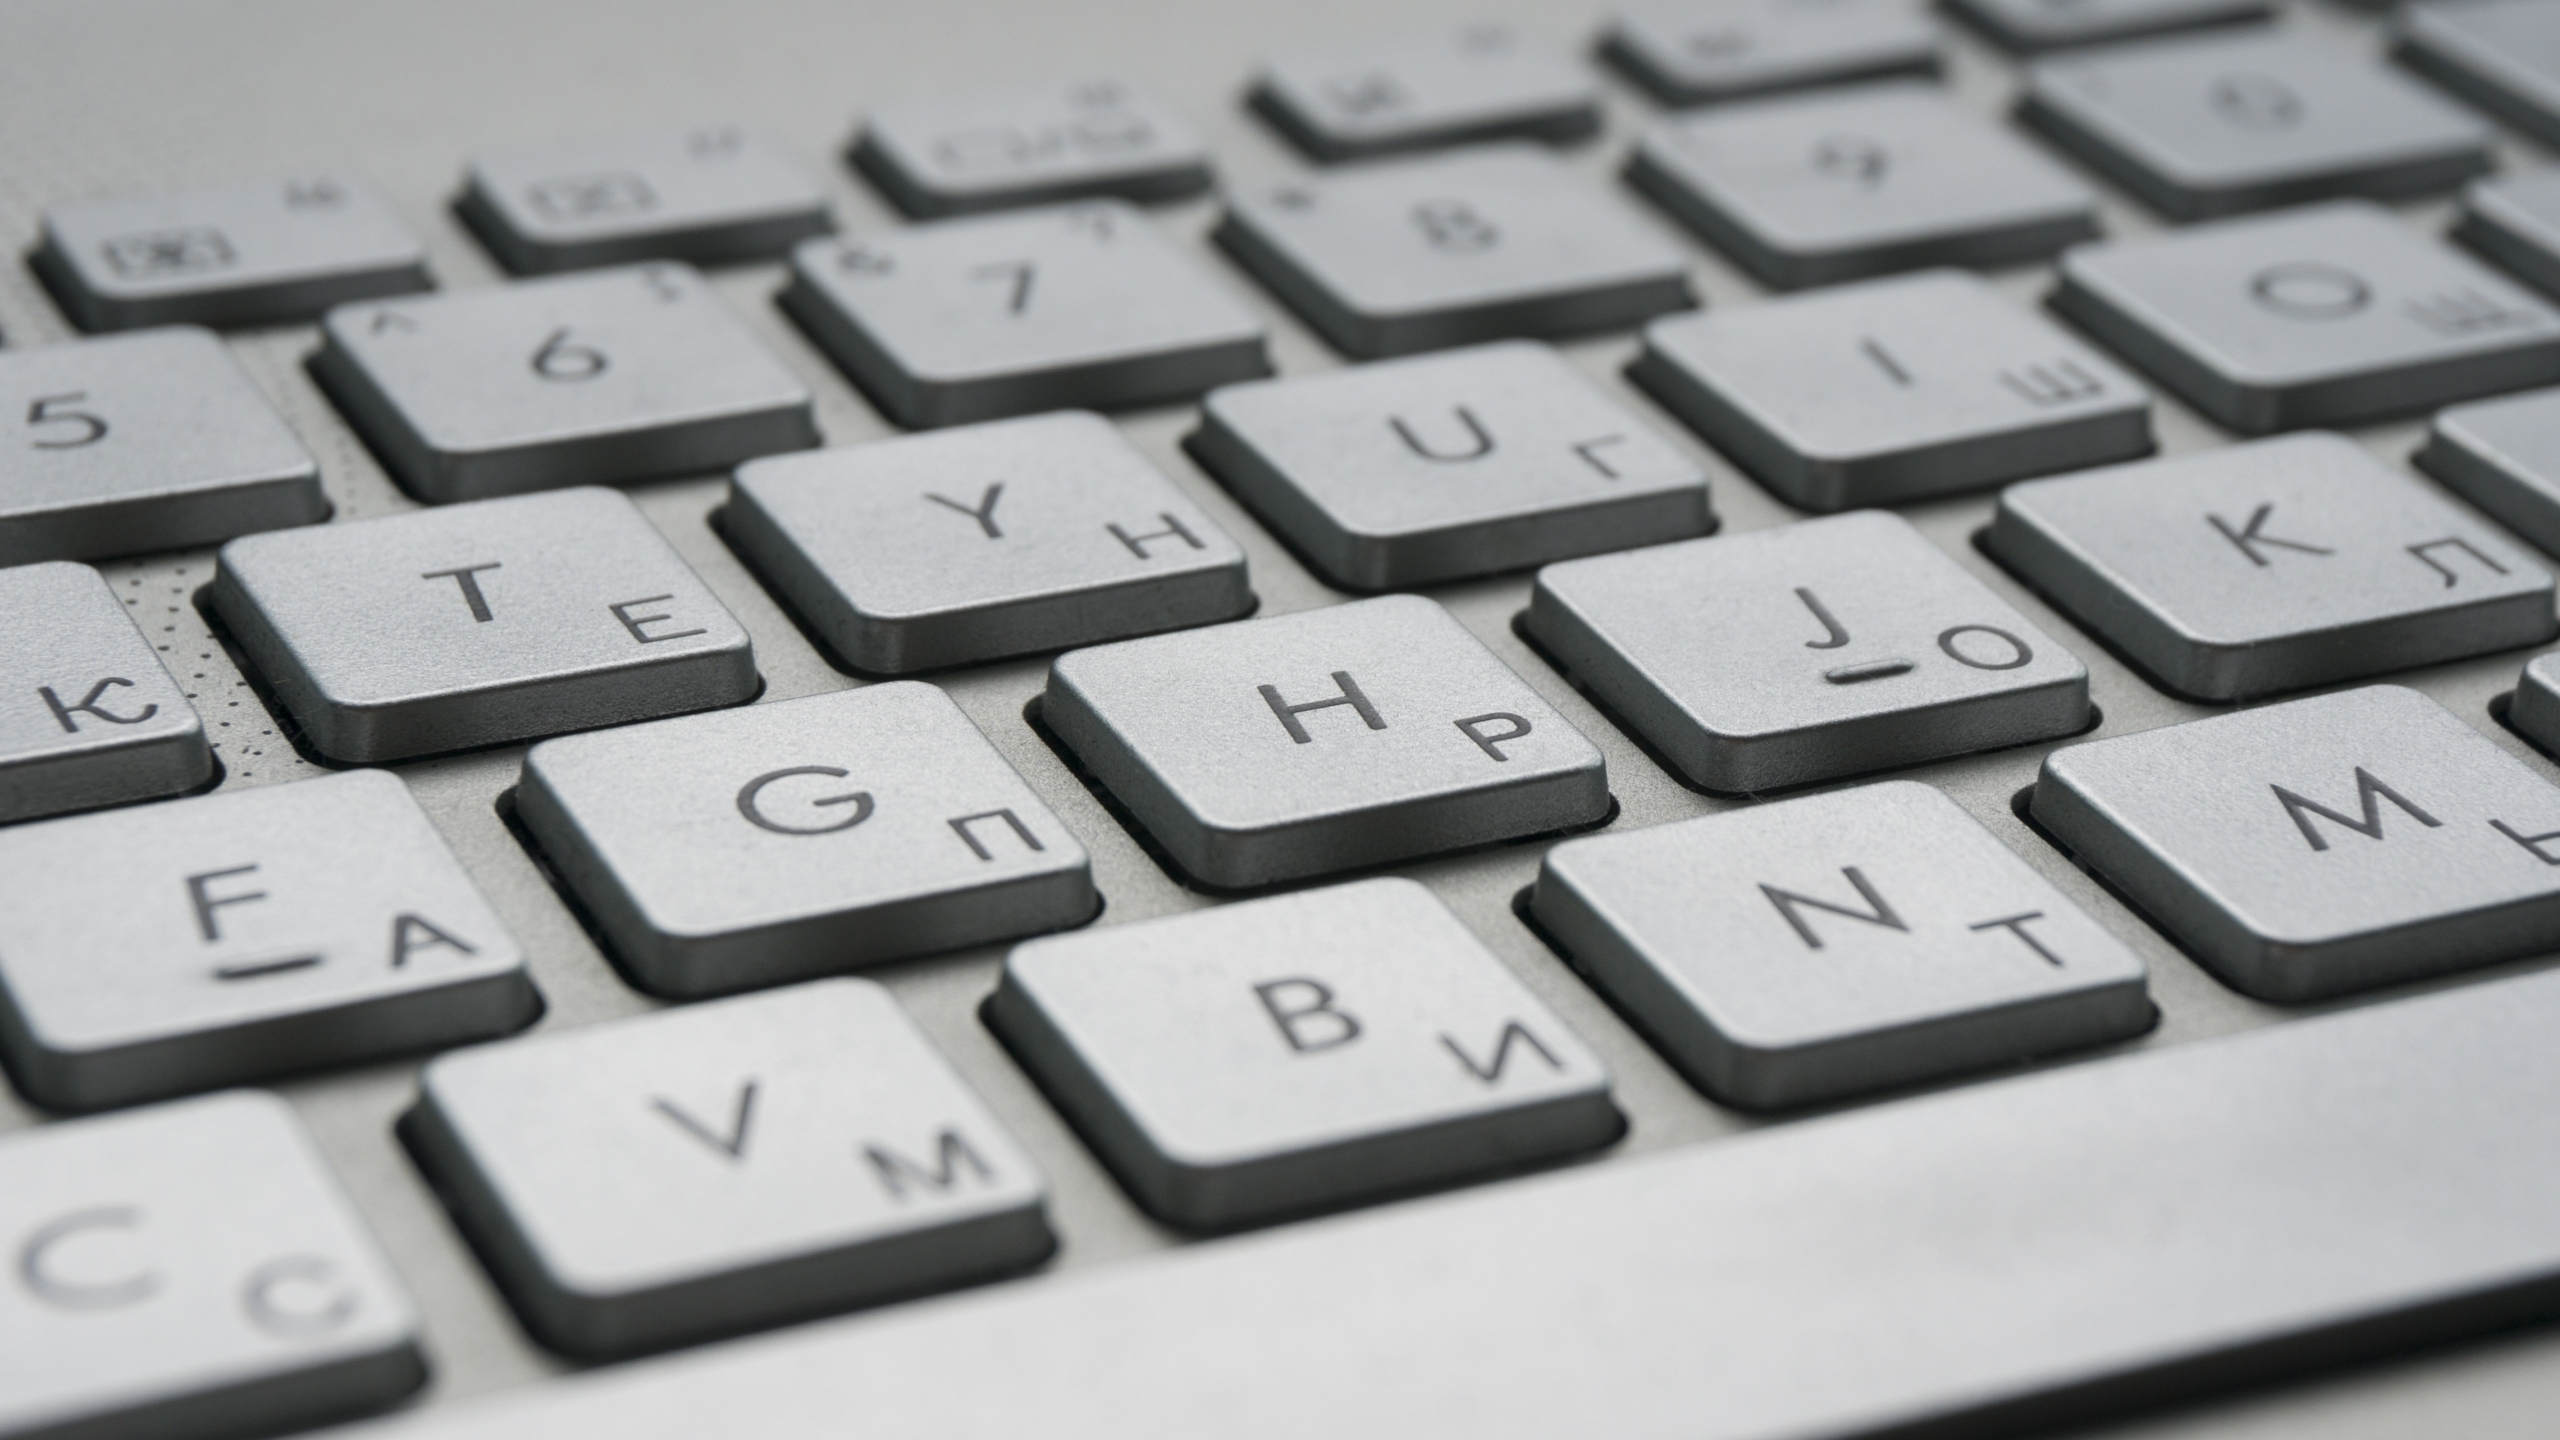 2560x1440 Keyboard Keys Buttons 1440p Resolution Wallpaper Hd Hi Tech 4k Wallpapers Images Photos And Background